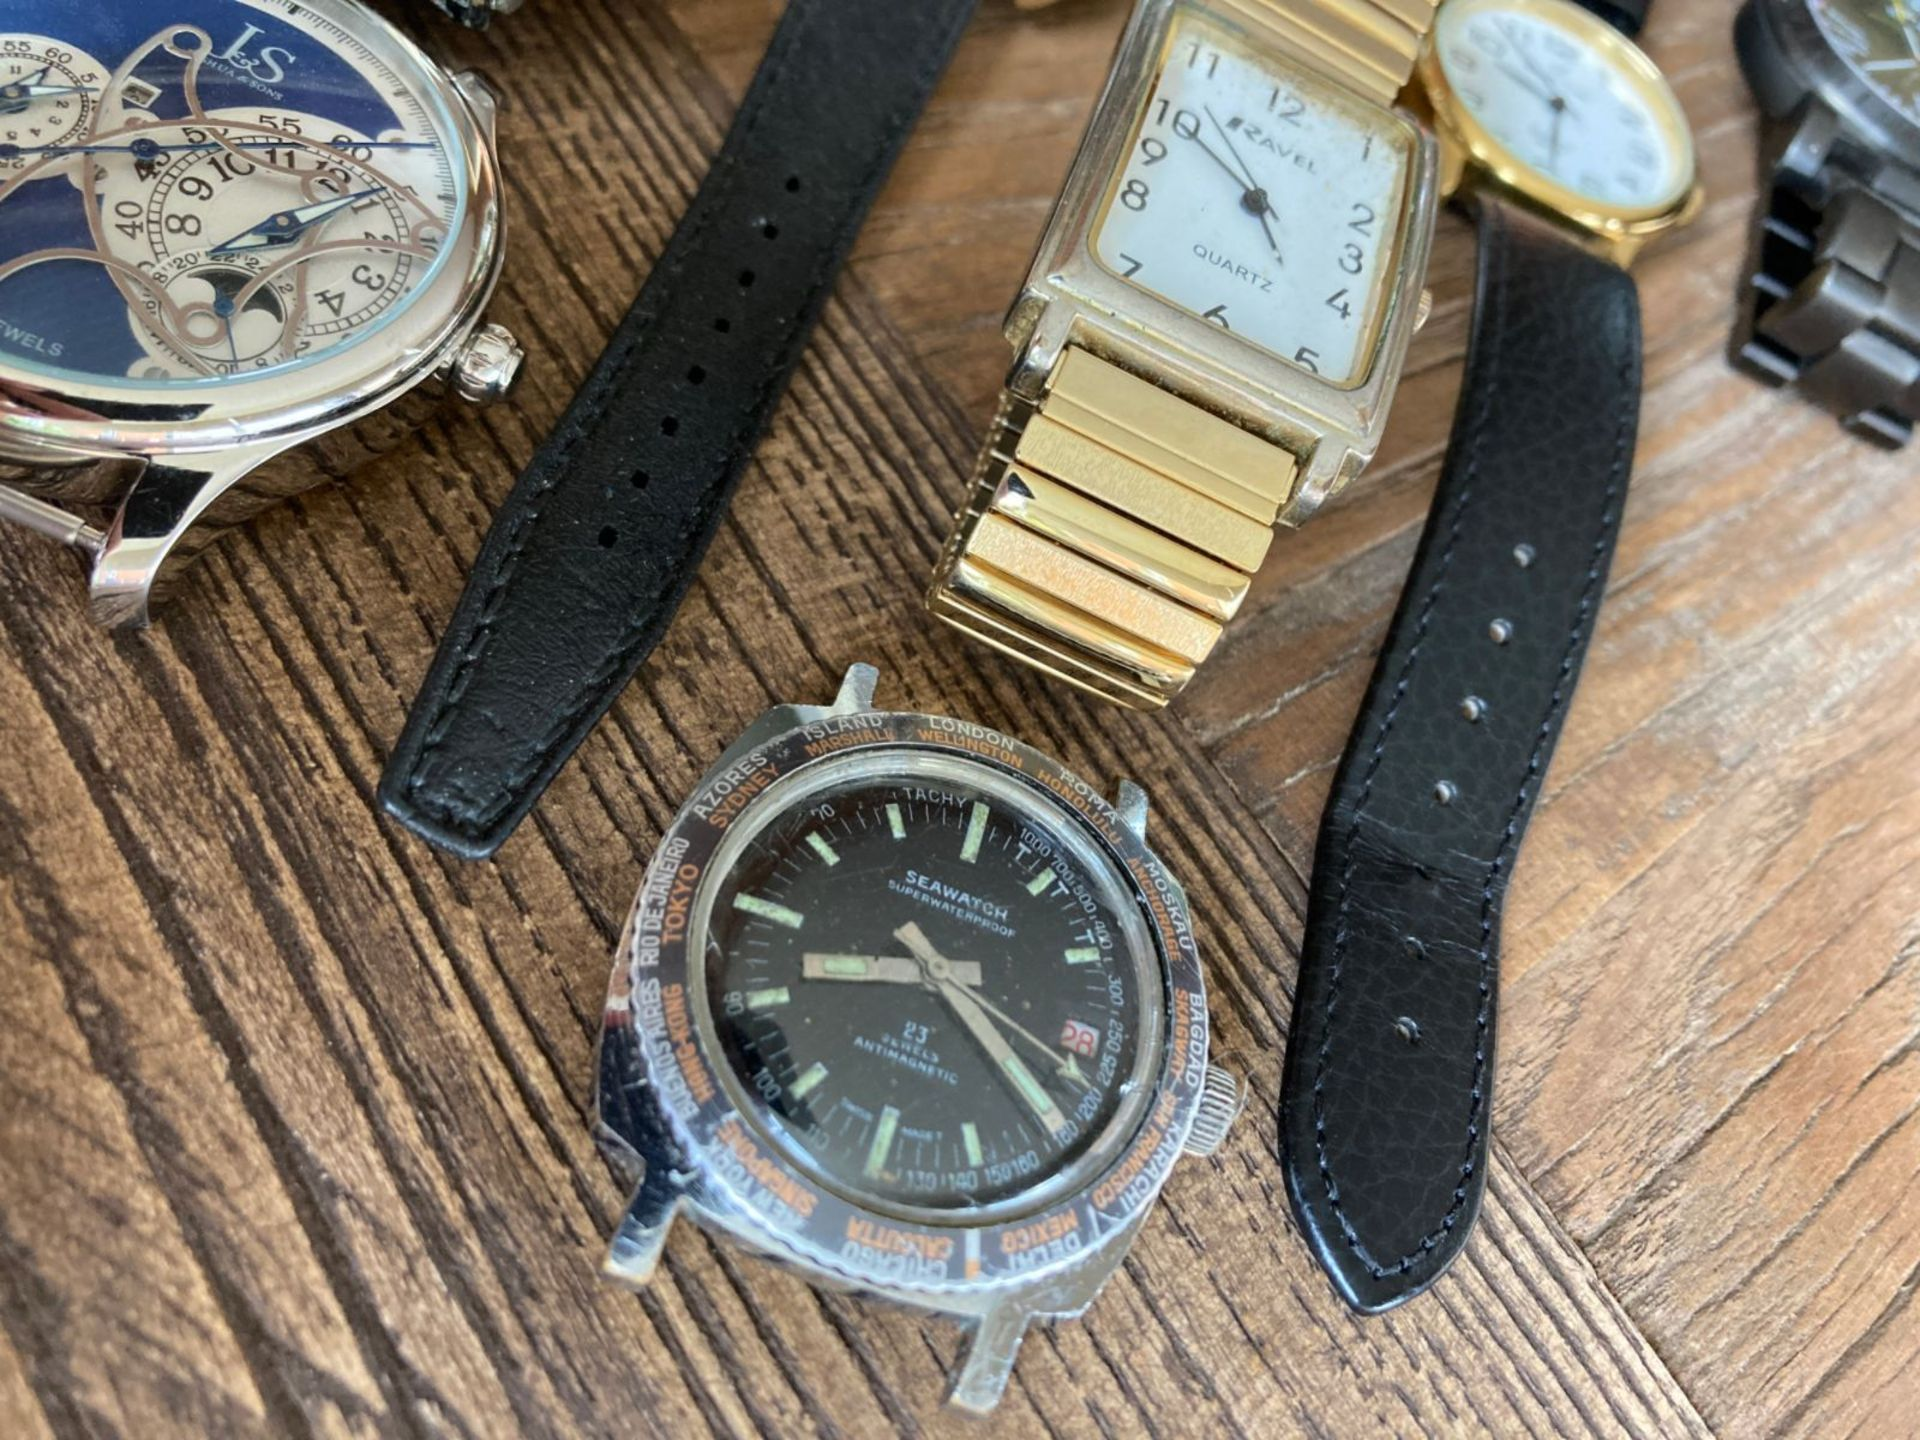 MIXED WATCHES INC SEAWATCH, JOSHUA AND SONS ETC - Image 3 of 4